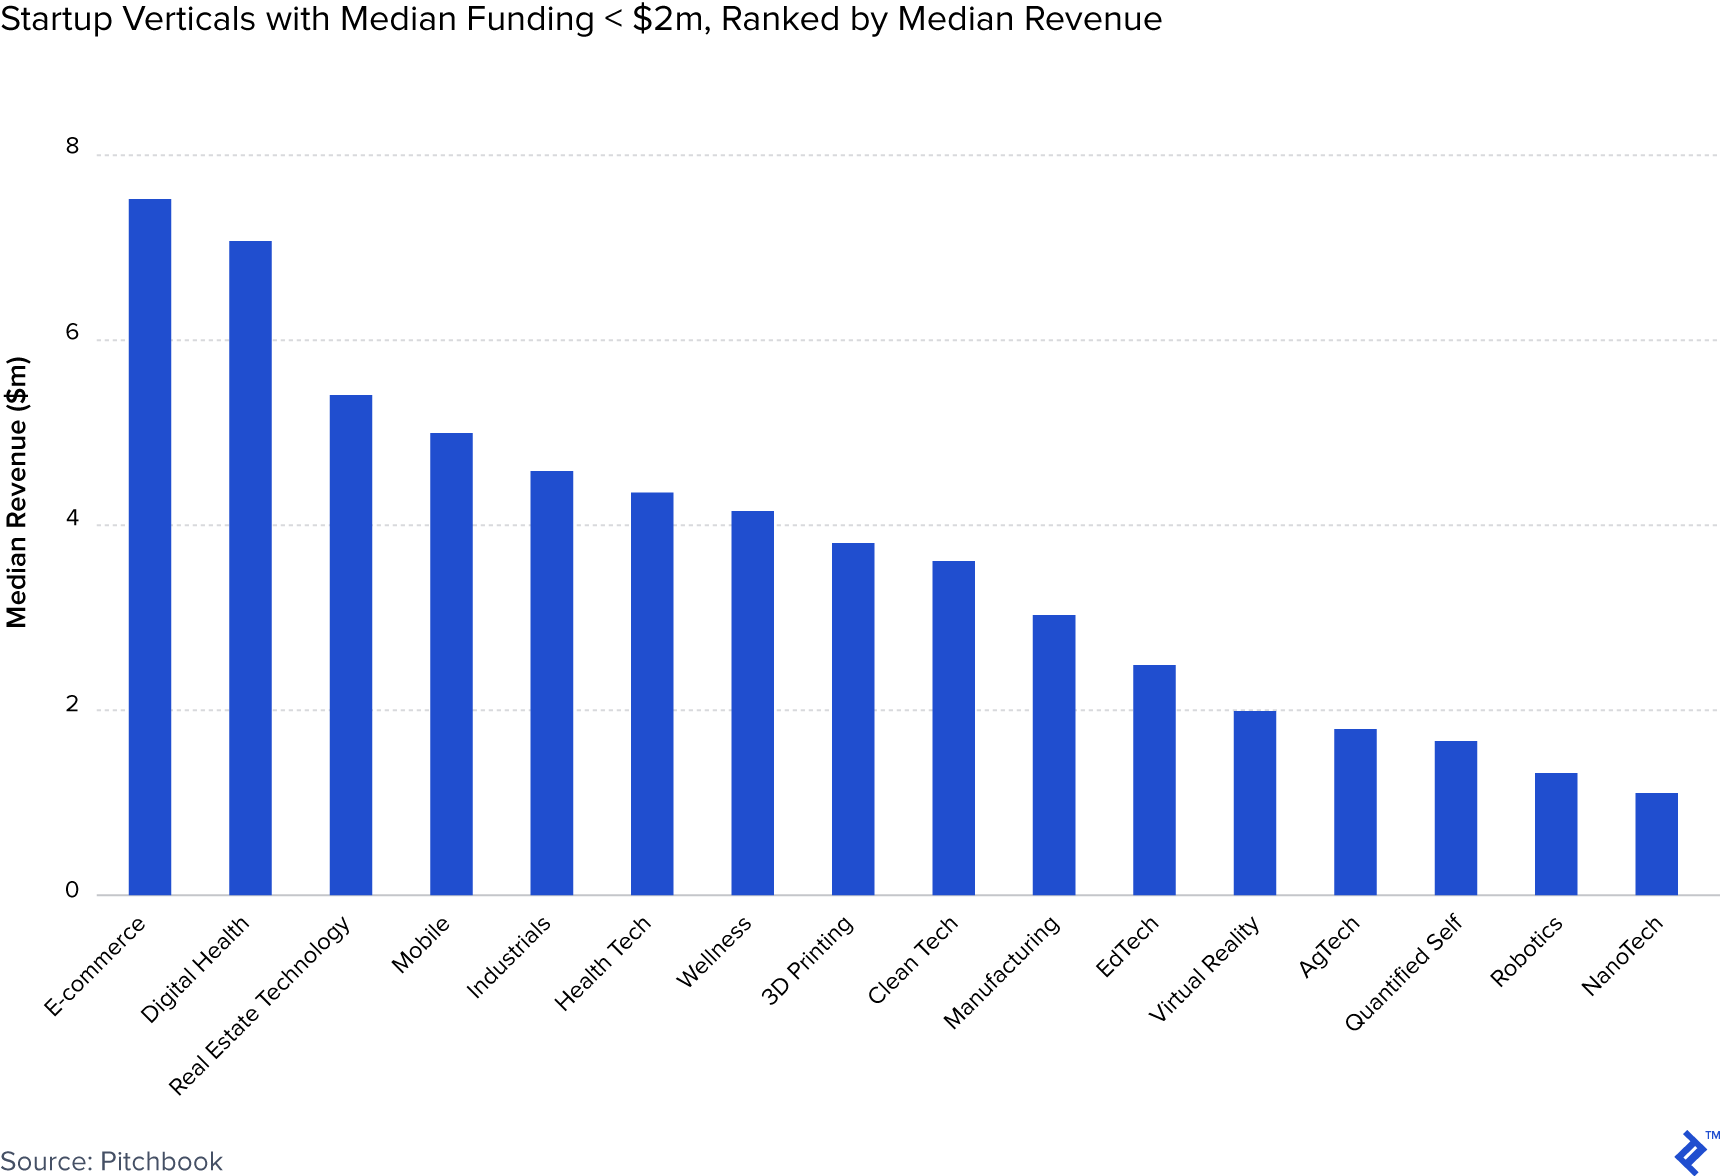 Chart showing startup verticals with median funding of under two million dollars, ranked by median revenue.